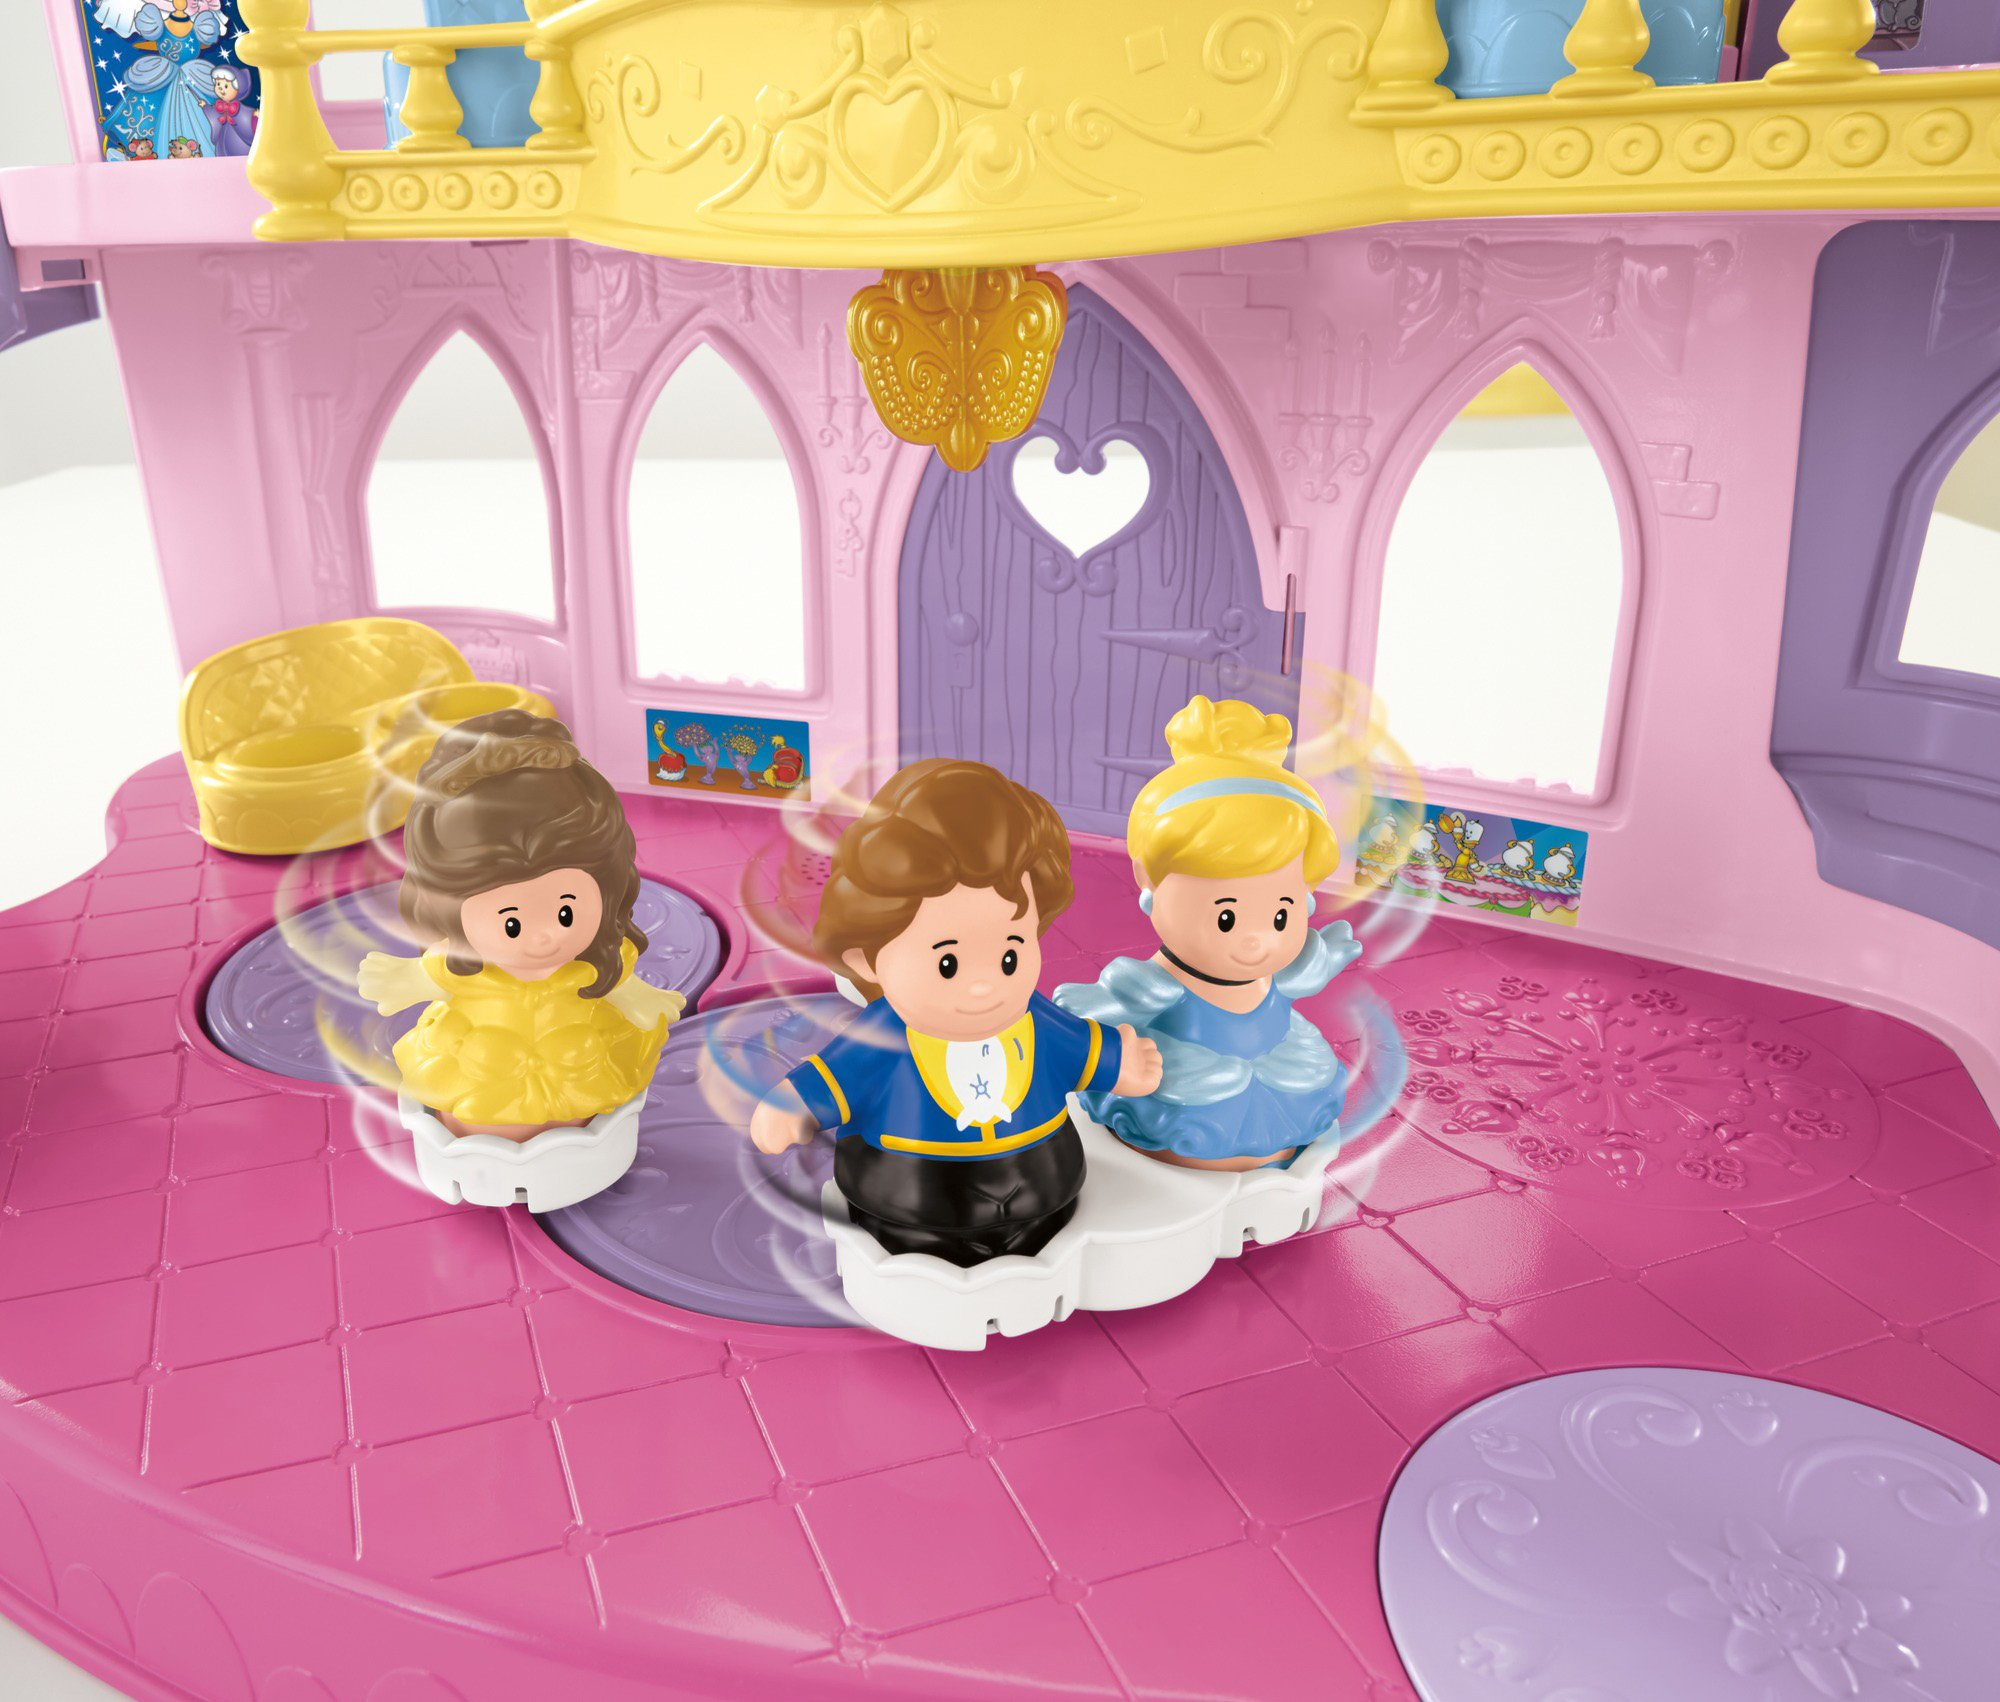 Fisher-Price Little People Disney Princess, Musical Dancing Palace by Fisher-Price (Image #12)